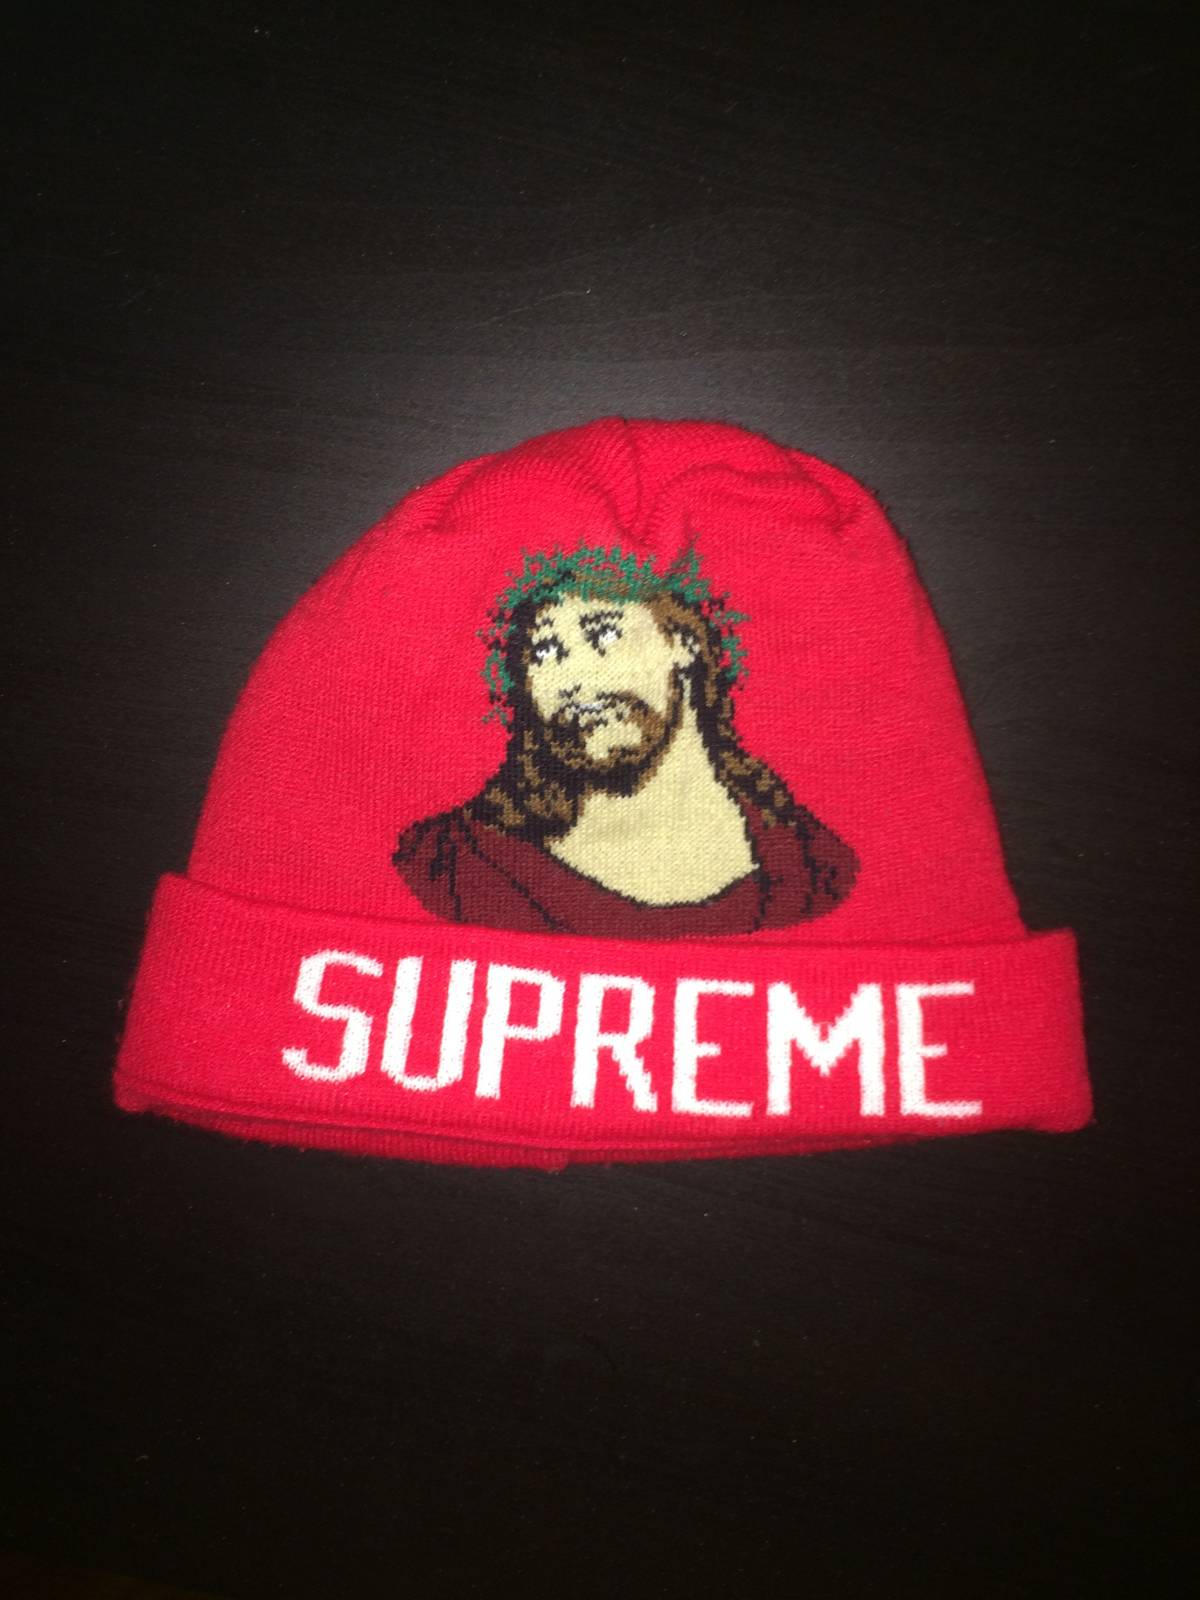 72c1ddefc77 Supreme Supreme INRI Jesus Beanie Red ONE SIZE Size one size - Hats for  Sale - Grailed